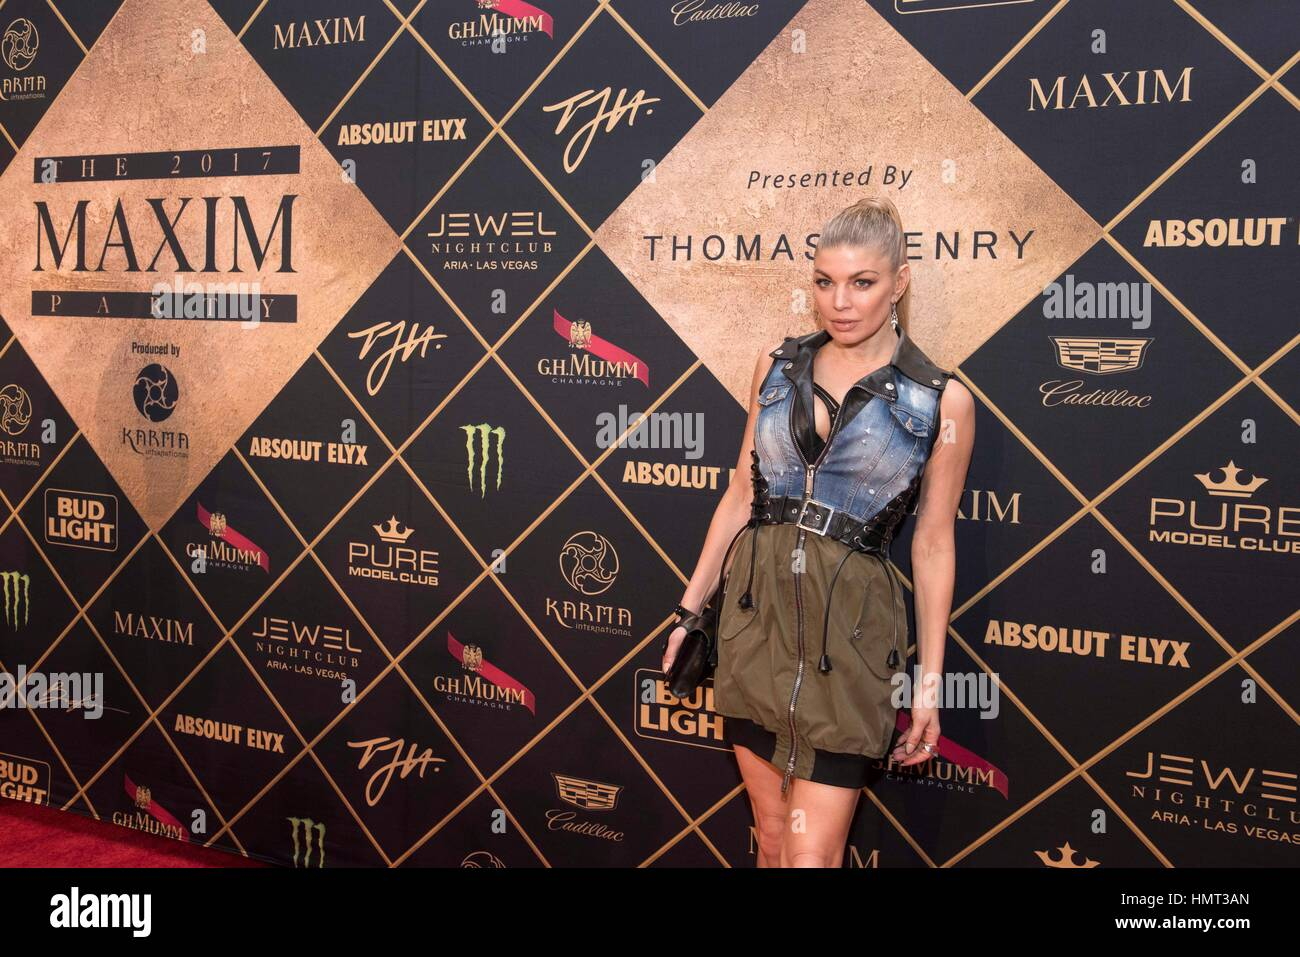 Fergie attends the red carpet at the 2017 Maxim Party for Super Bowl LI at Smart Financial Centre on February 4, 2017 in Houston, Texas.